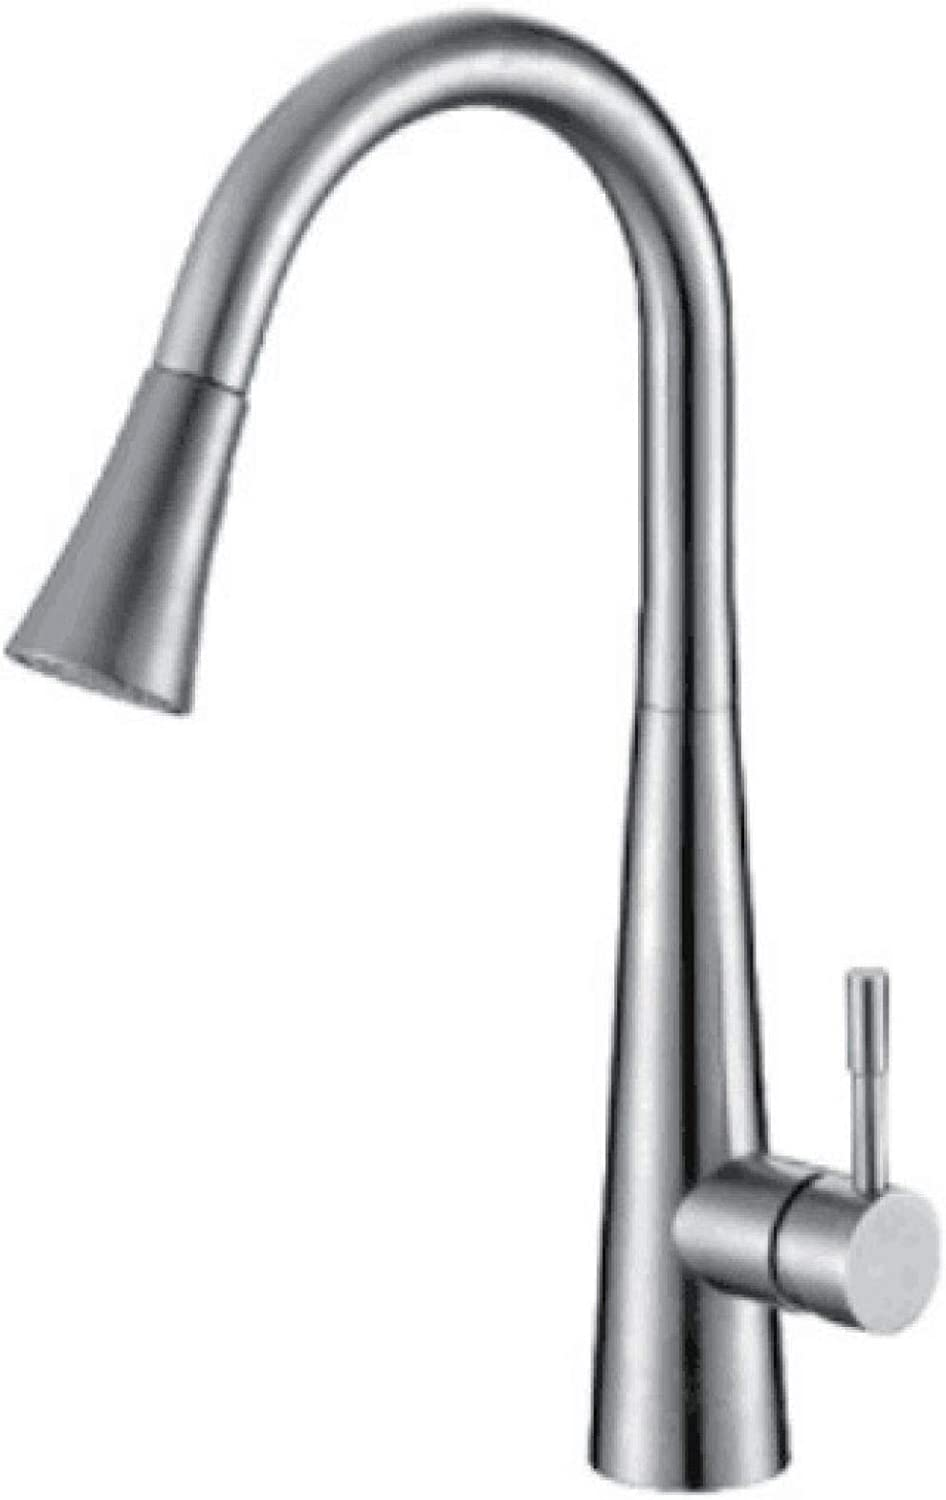 Modern Traditional Kitchen Sale special price Sink Max 60% OFF Mixer Home Taps Tap 360°Kitchen